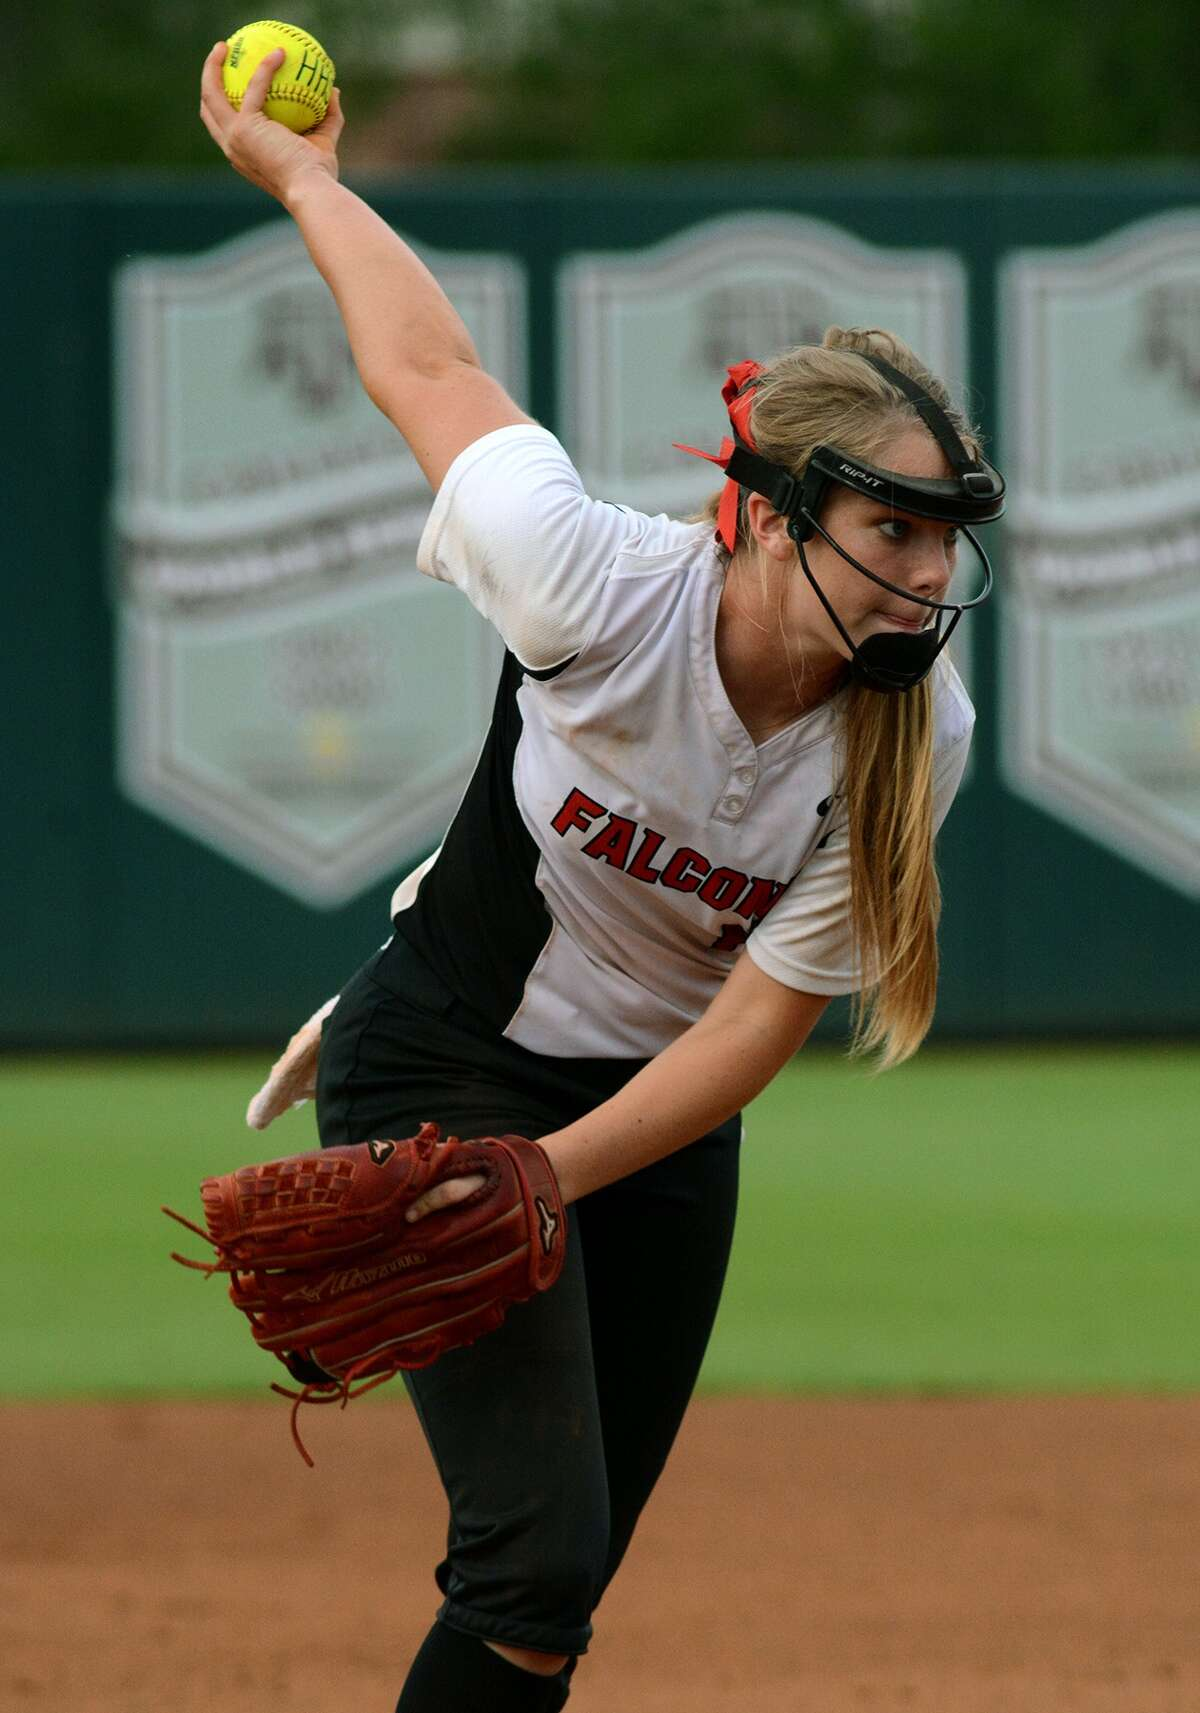 Huffman pitcher Savanna Cates works against a La Grange hitter during game one of their Region III Class 4A finals matchup at Texas A&M University on Wednesday, May 27, 2015. (Photo by Jerry Baker/Freelance)